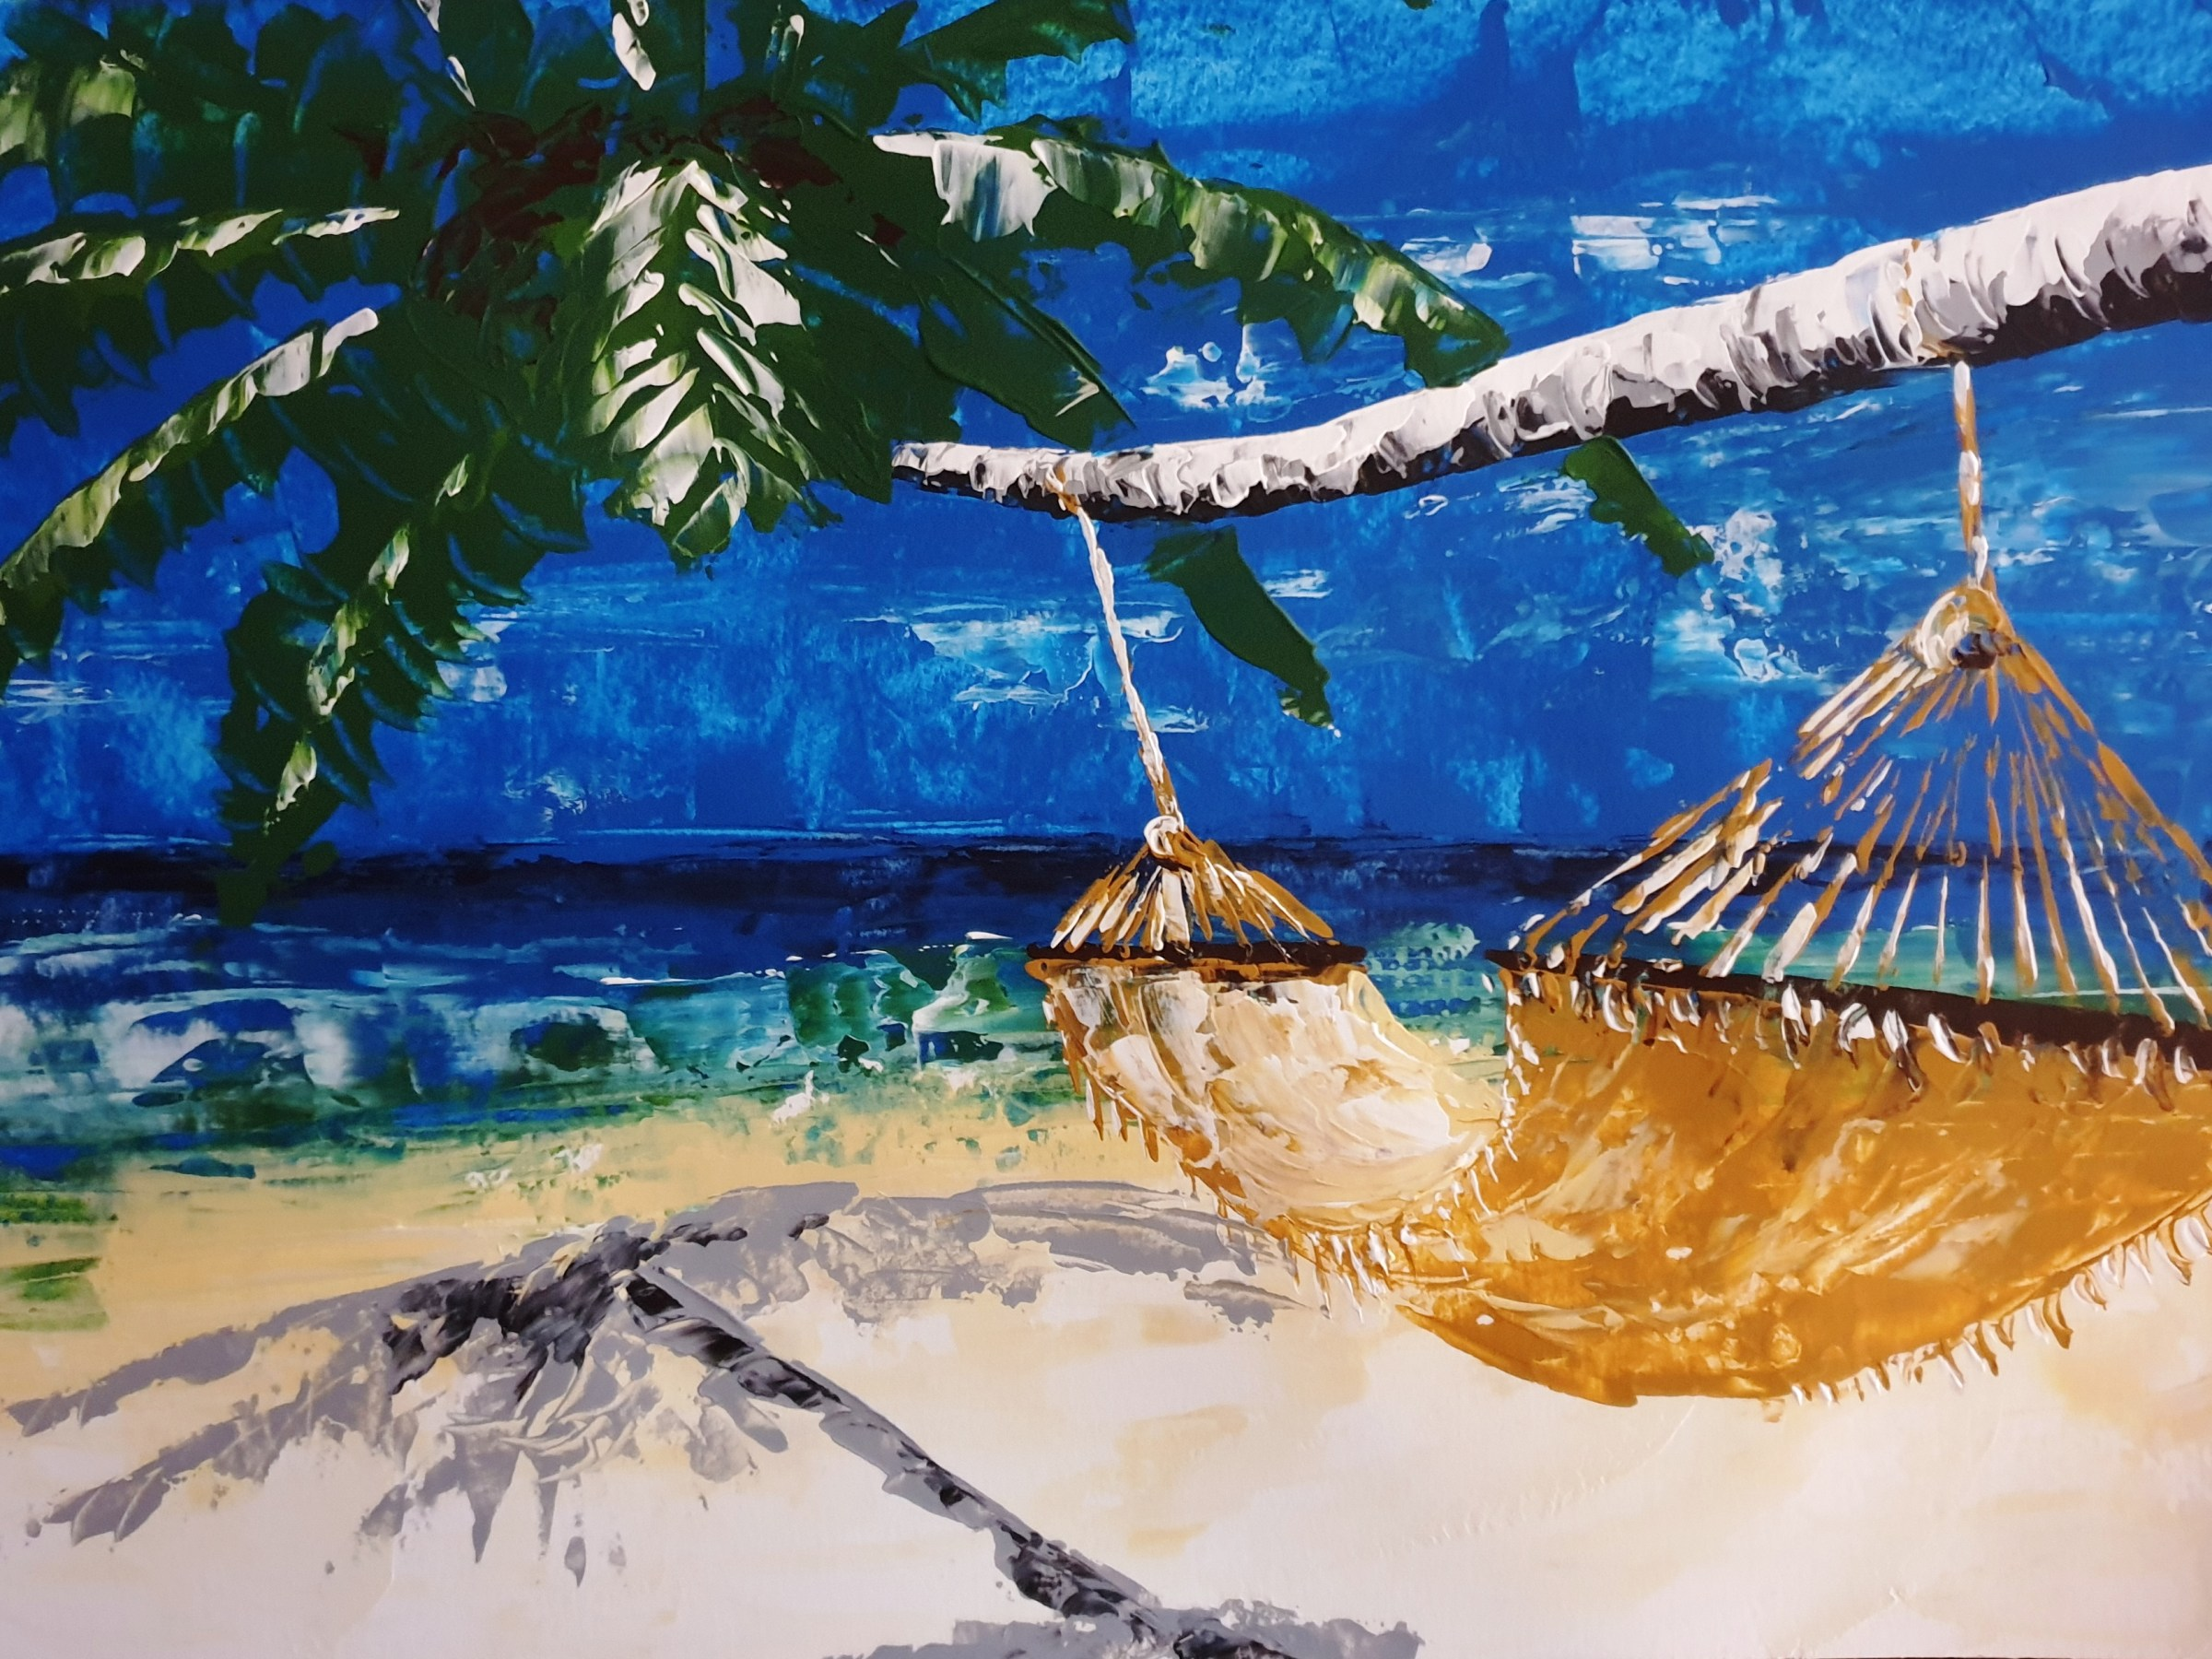 Art Event - Life's a Beach - Here's an example of what a student created